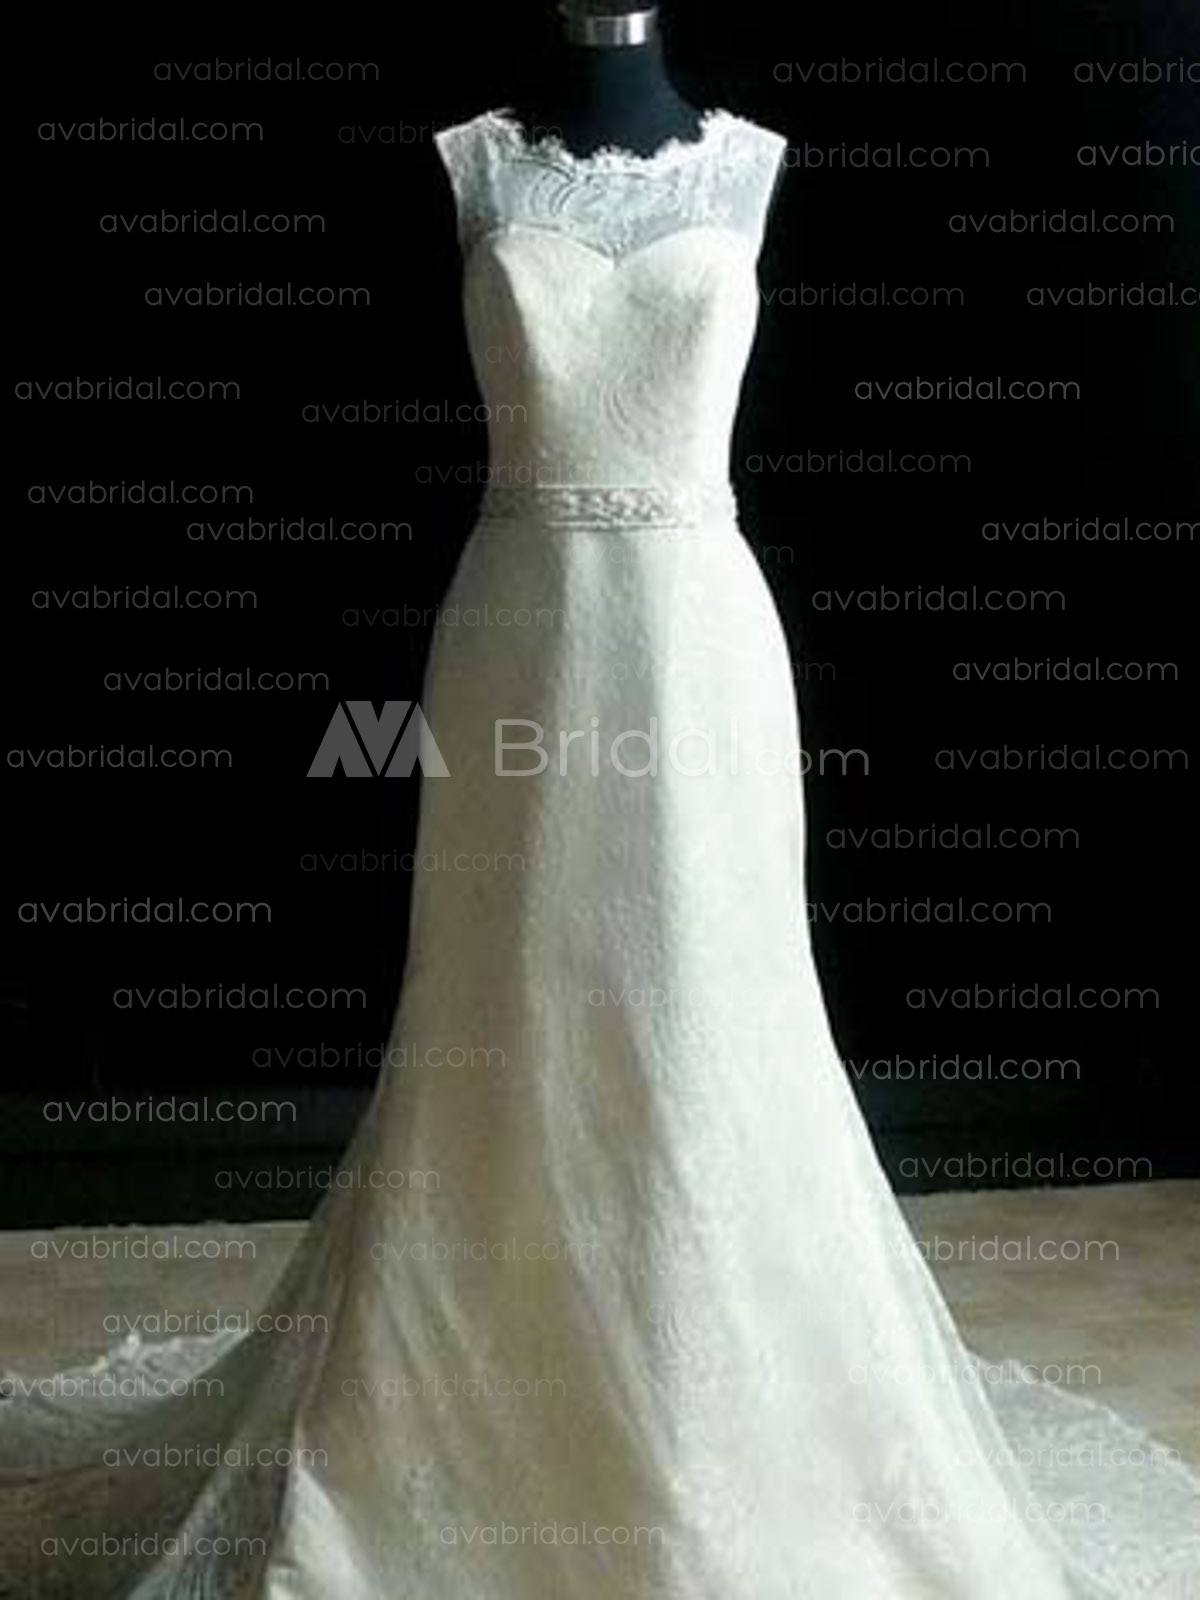 Bridesmaid dresses near manchester ct cheap wedding dresses for Cheap wedding dresses in ct